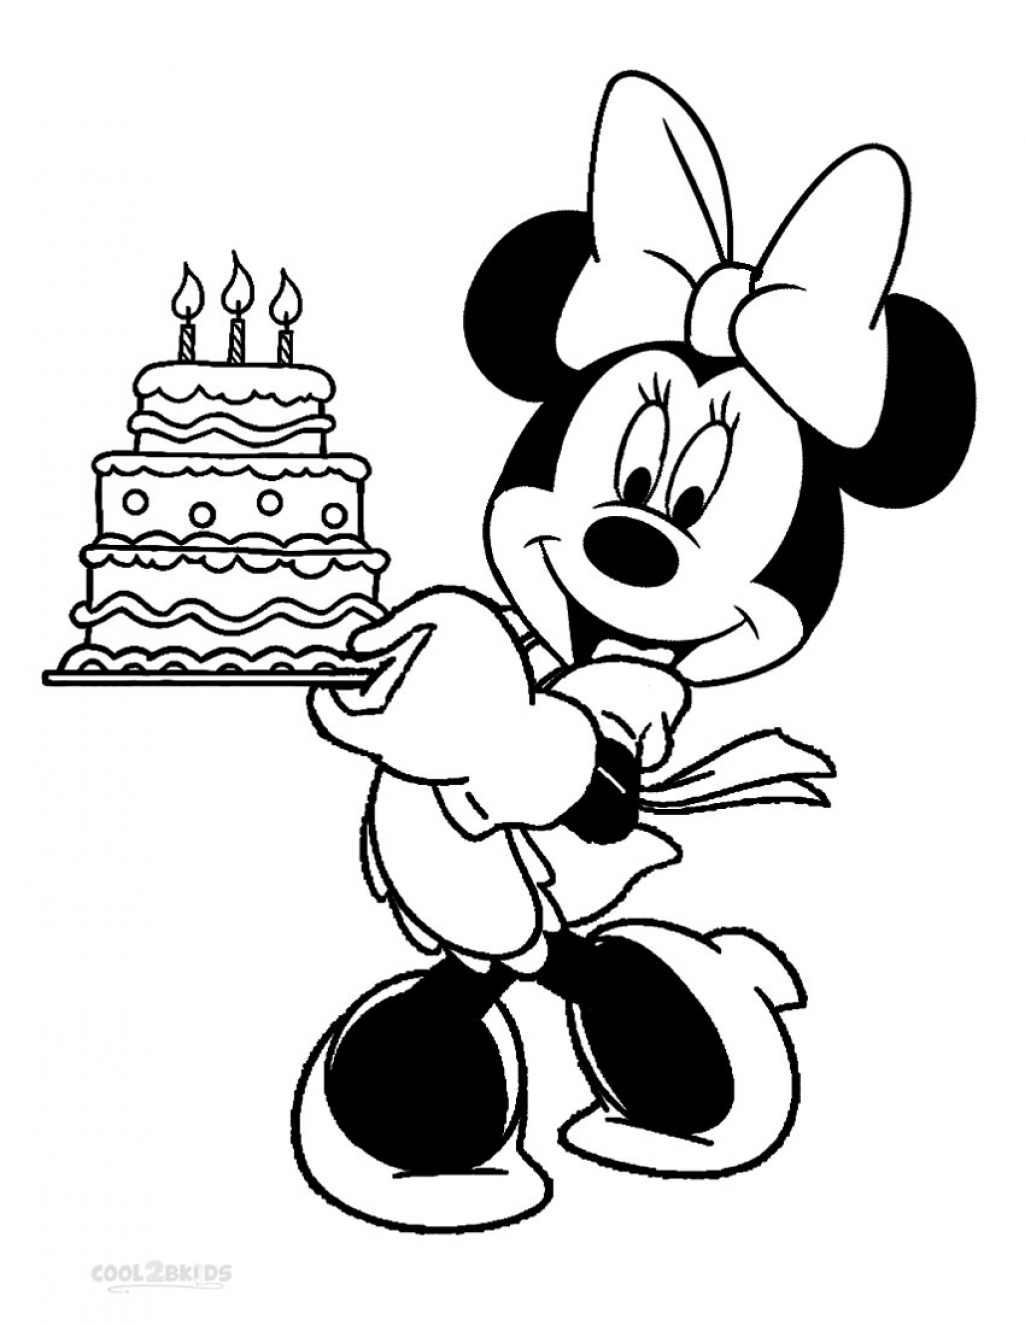 minnie mouse coloring pages a4 - photo#7